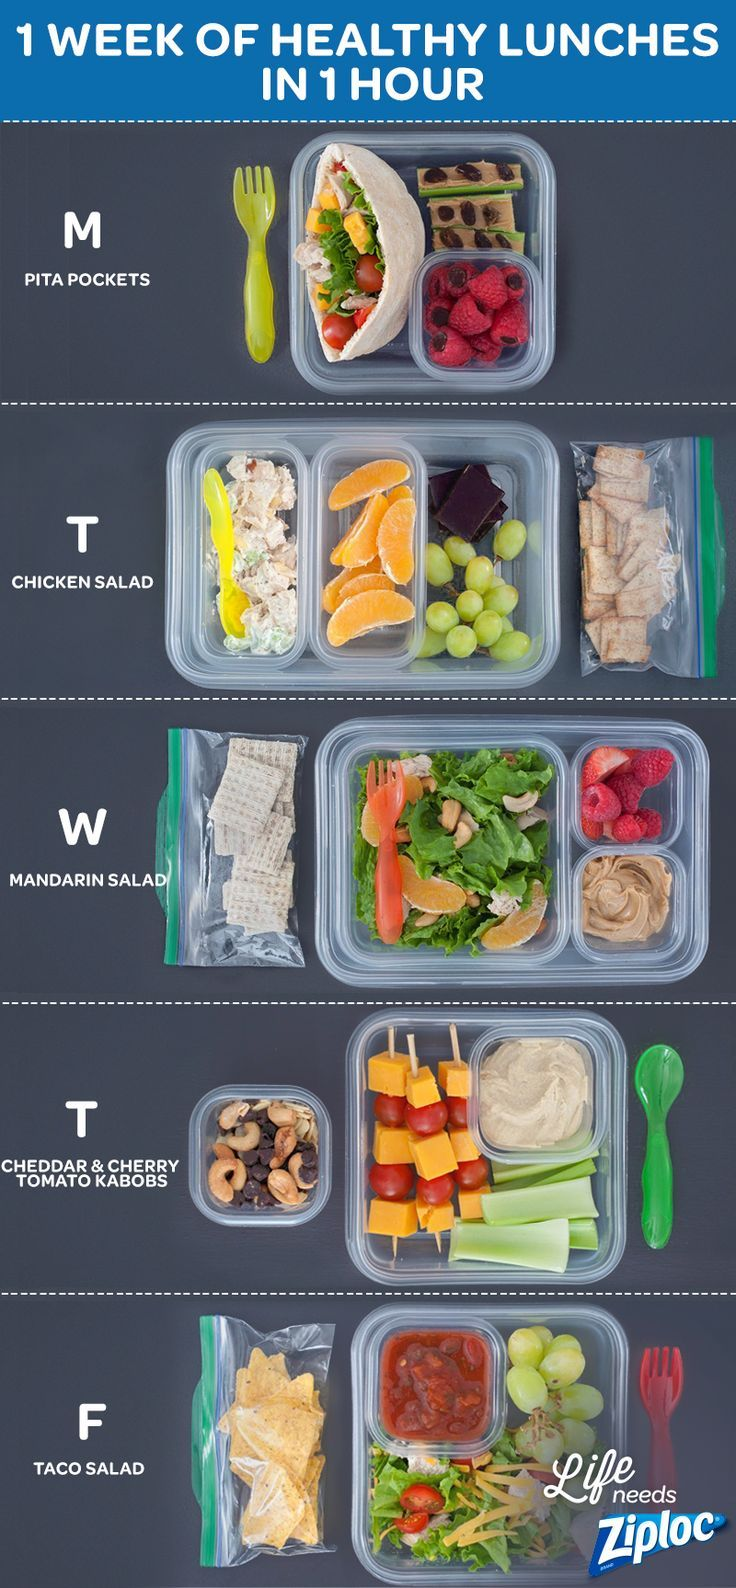 You donu2019t need to spend a ton of money or time on healthy lunches. Shop from one list and make taco salad, cheddar and cherry tomato kabobs, pita pockets, and more in just one hour. Pack it all up in Ziplocu00ae containers, store in the fridge, then grab and go. Makes mornings so much easier when you donu2019t have to think about what youu2019re bringing for lunch each day. - Life And Shape